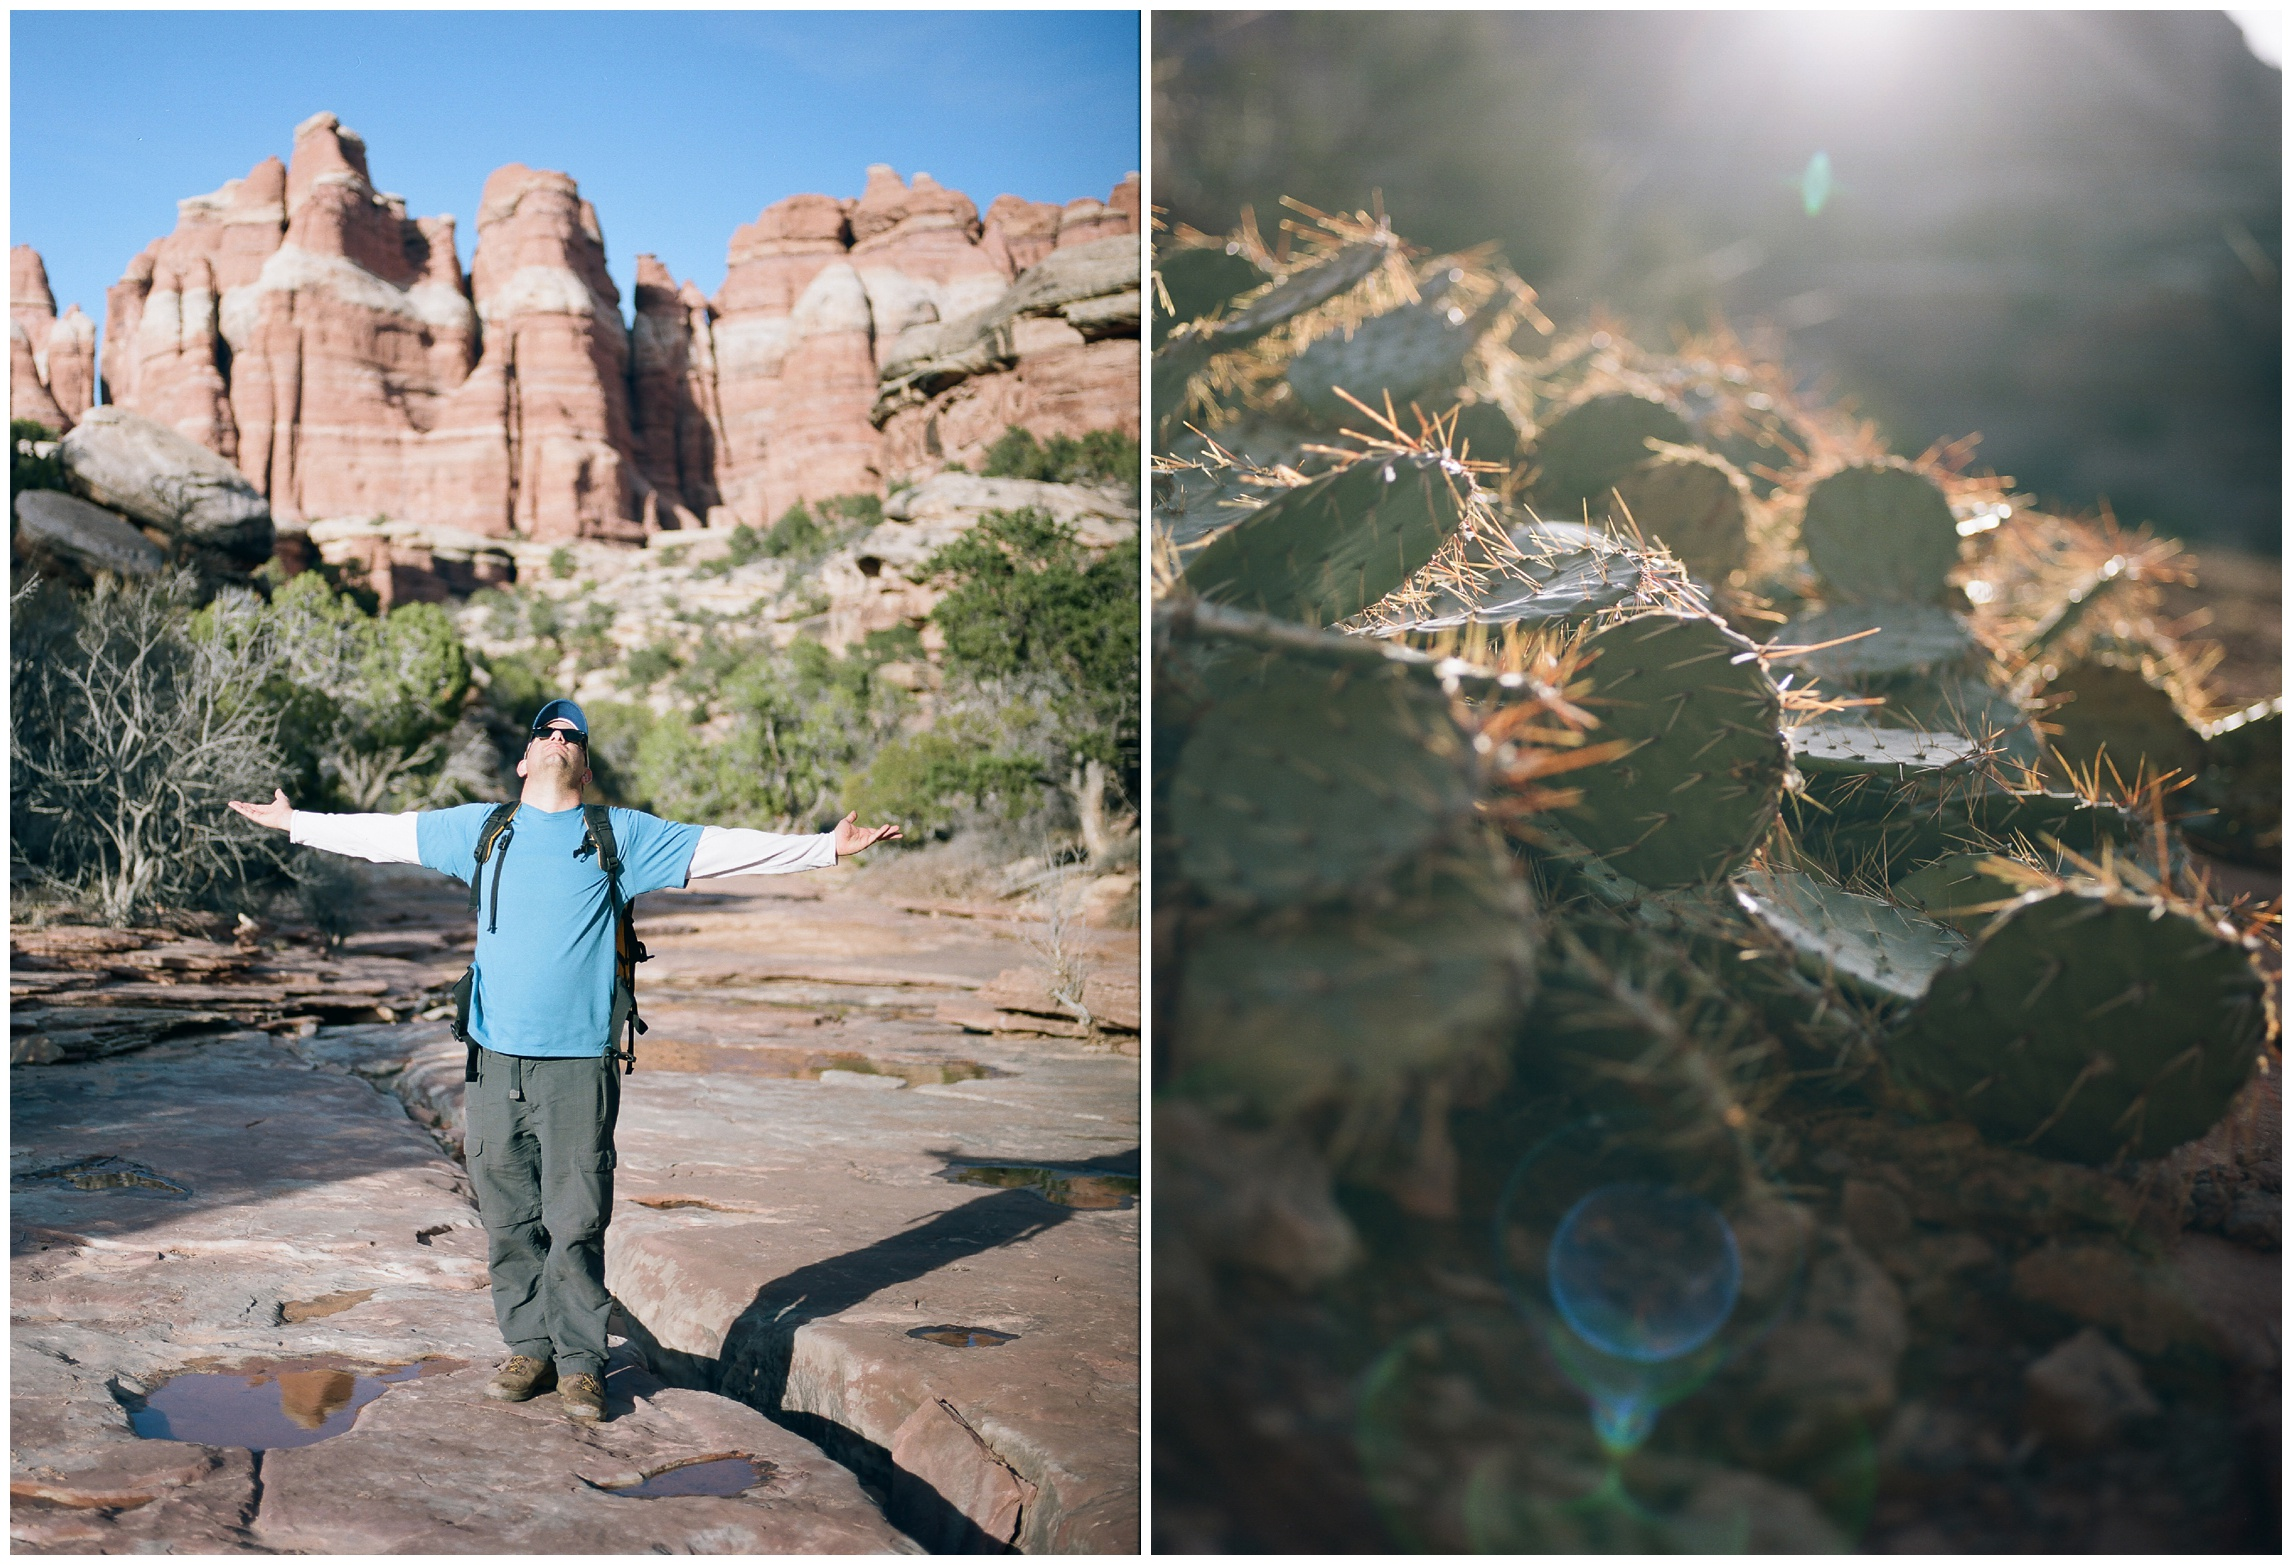 There was a lot of this.  Max enjoying the amazing views in Elephant Canyon, Canyonlands National Park. A cactus in the cool dusk light. Film photography by Sonja Salzburg of Sonja K Photography.